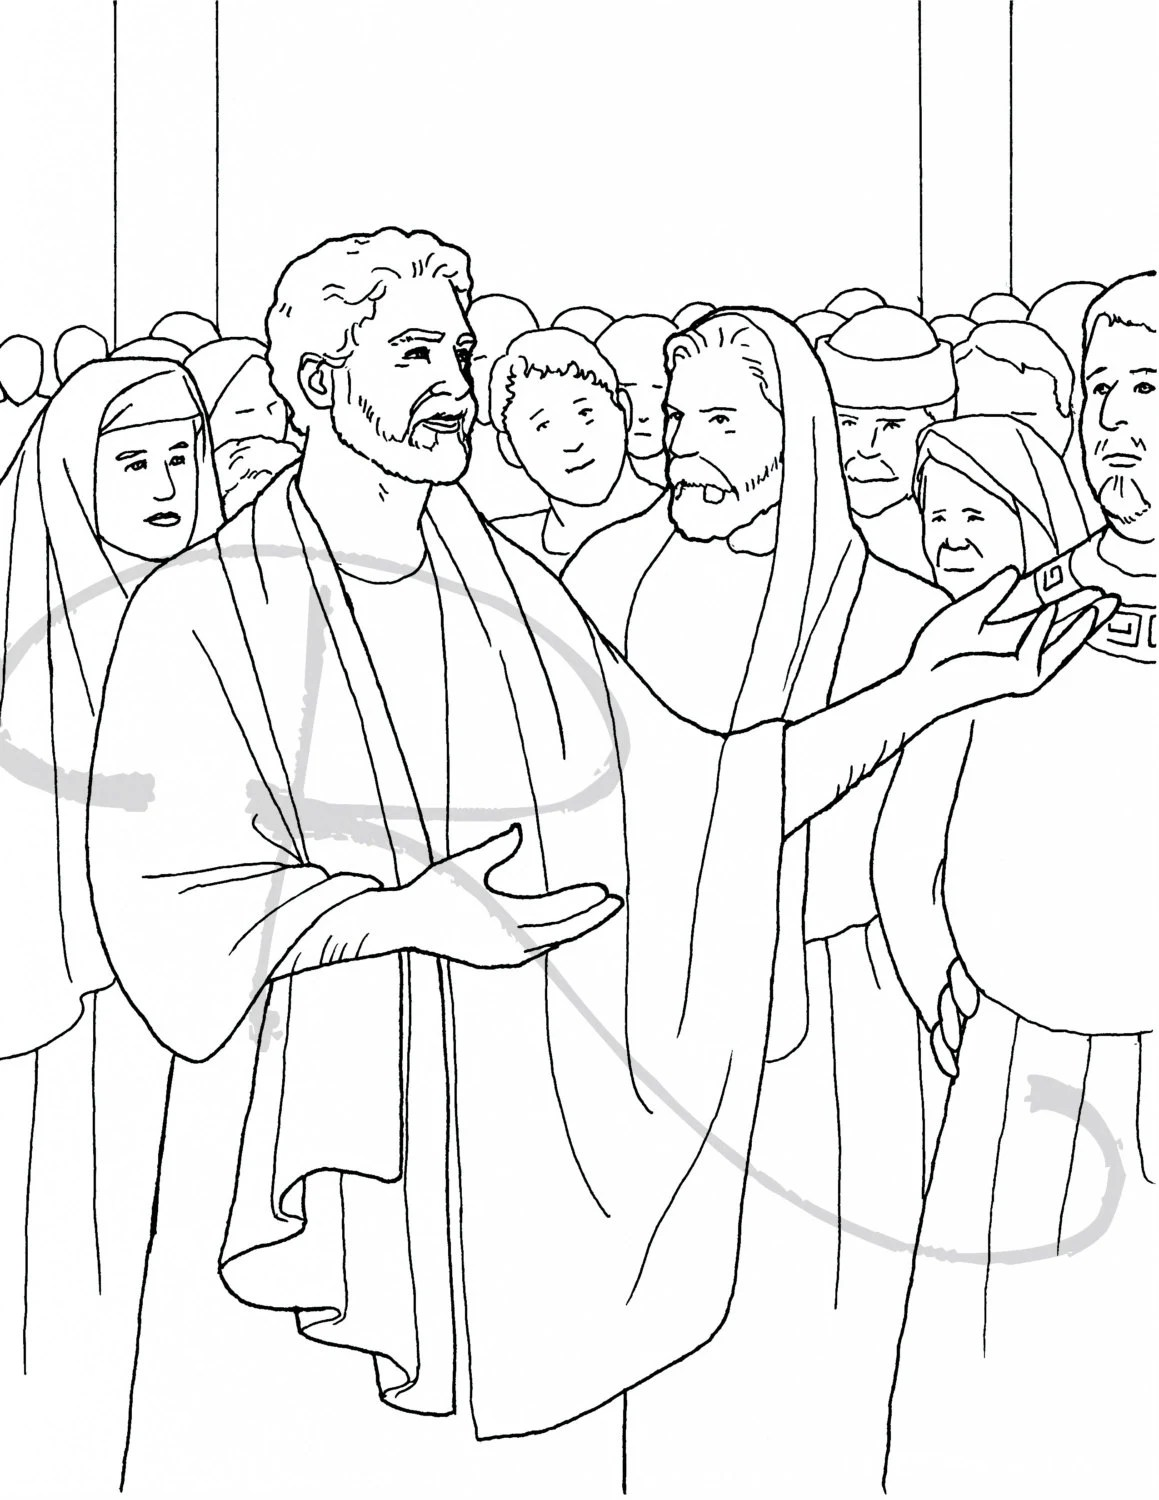 Peter Preaching Coloring Page Sketch Coloring Page